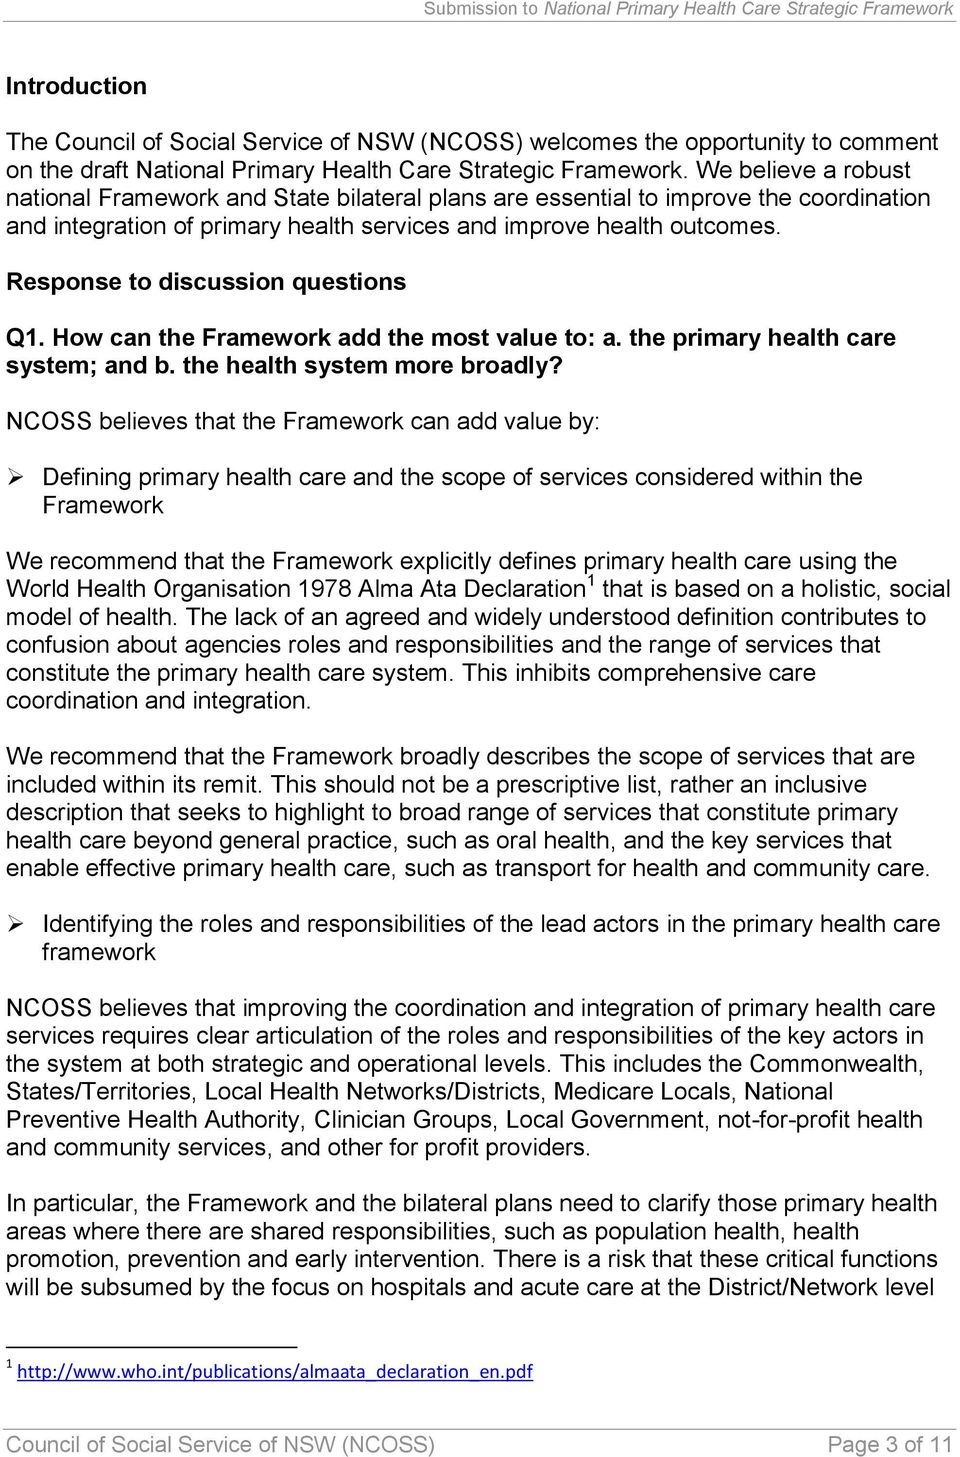 Response to discussion questions Q1. How can the Framework add the most value to: a. the primary health care system; and b. the health system more broadly?